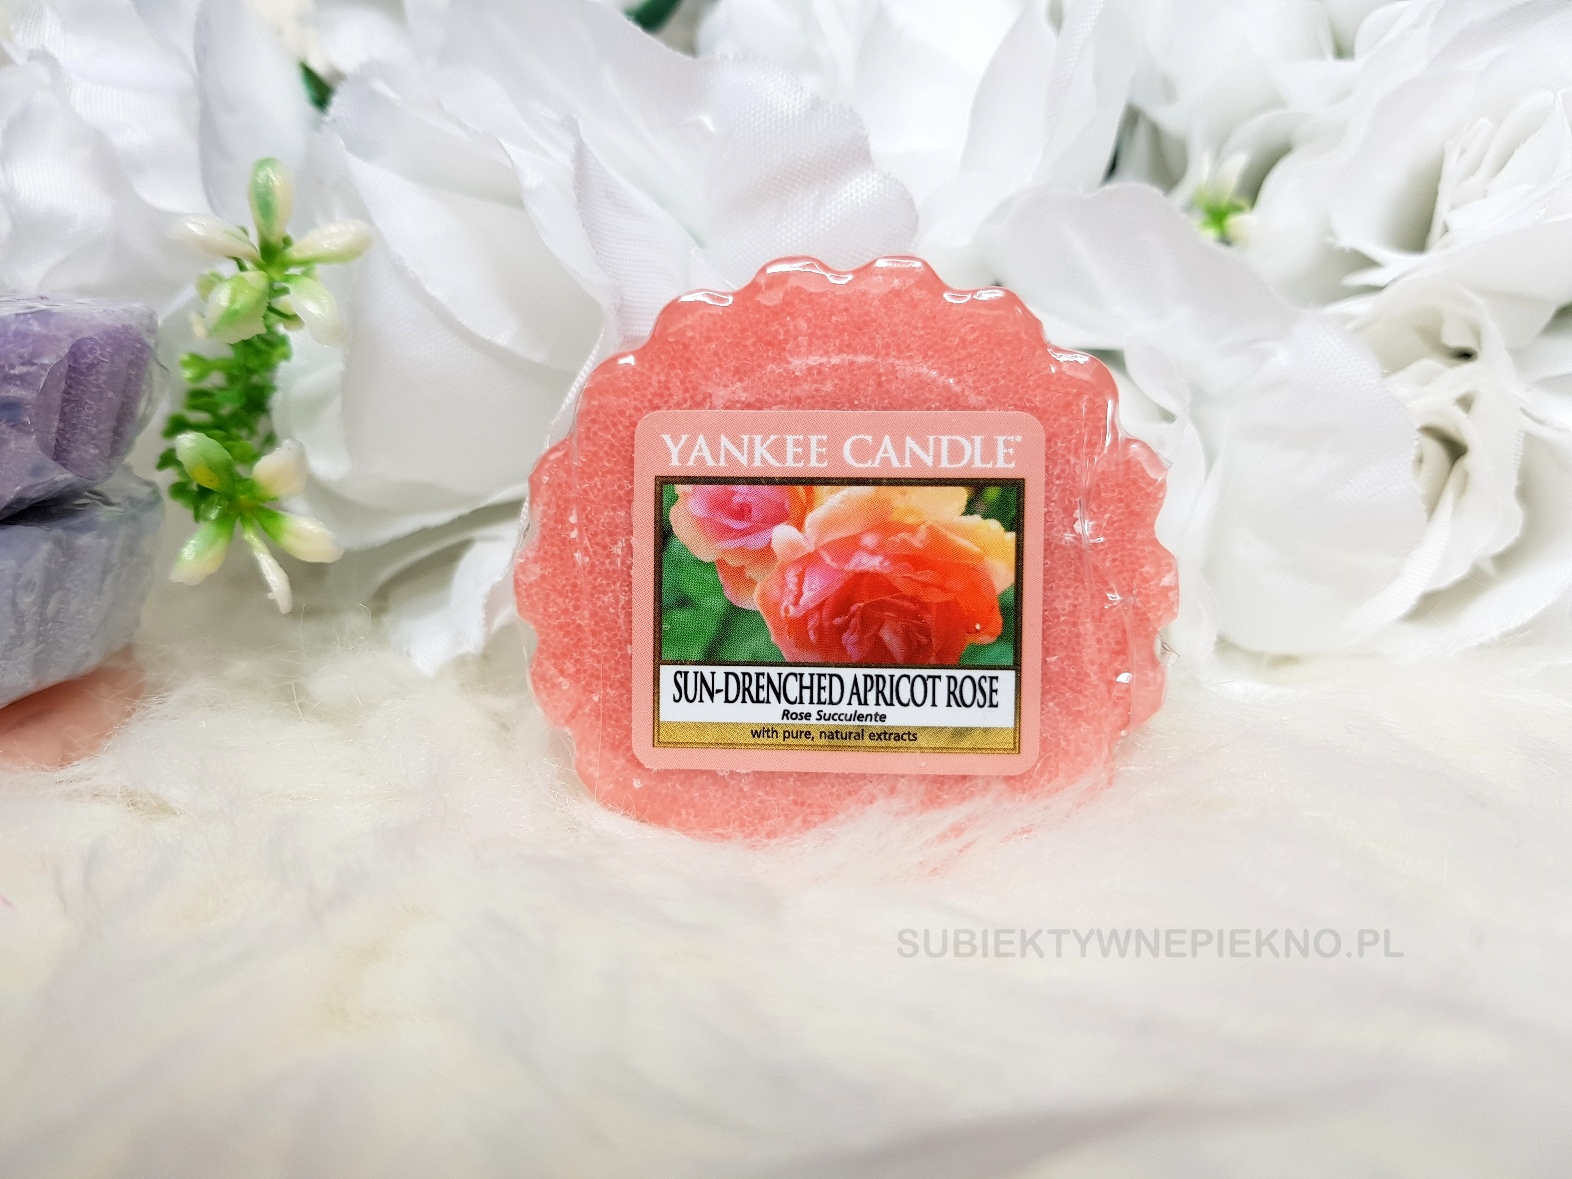 Sun-Drenched Apricot Rose Yankee Candle. Wiosenna kolekcja Q1 2018 Enjoy the Simple Things. Blog, opinie.